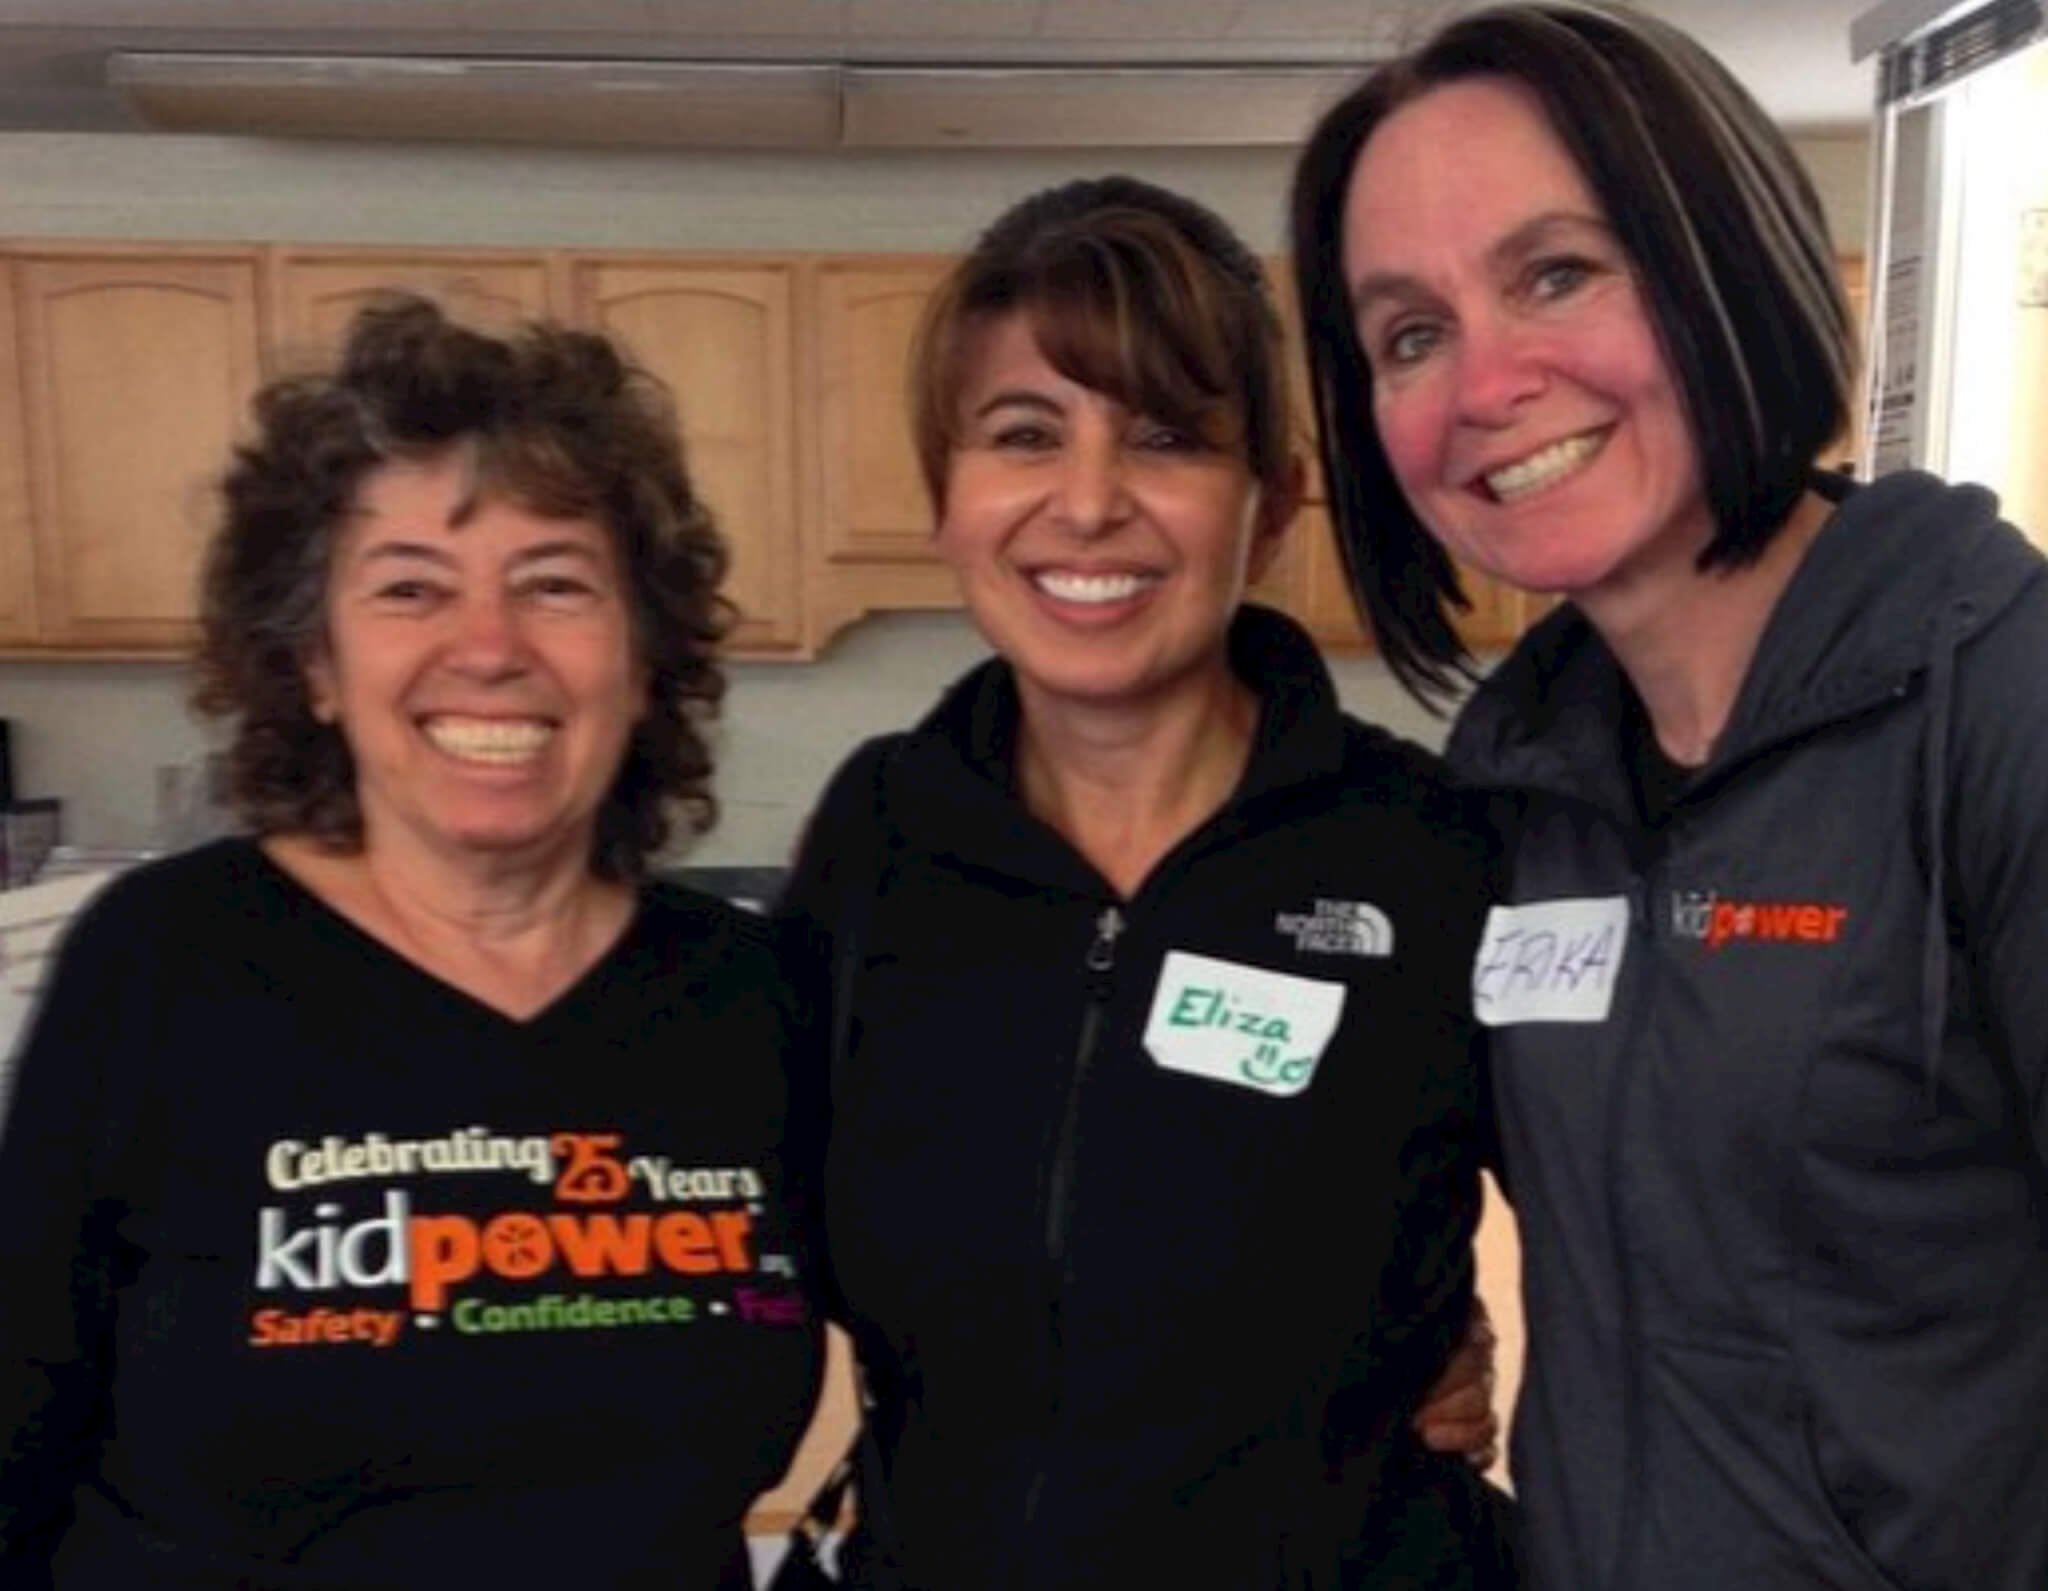 Kidpower partnership 2015.png